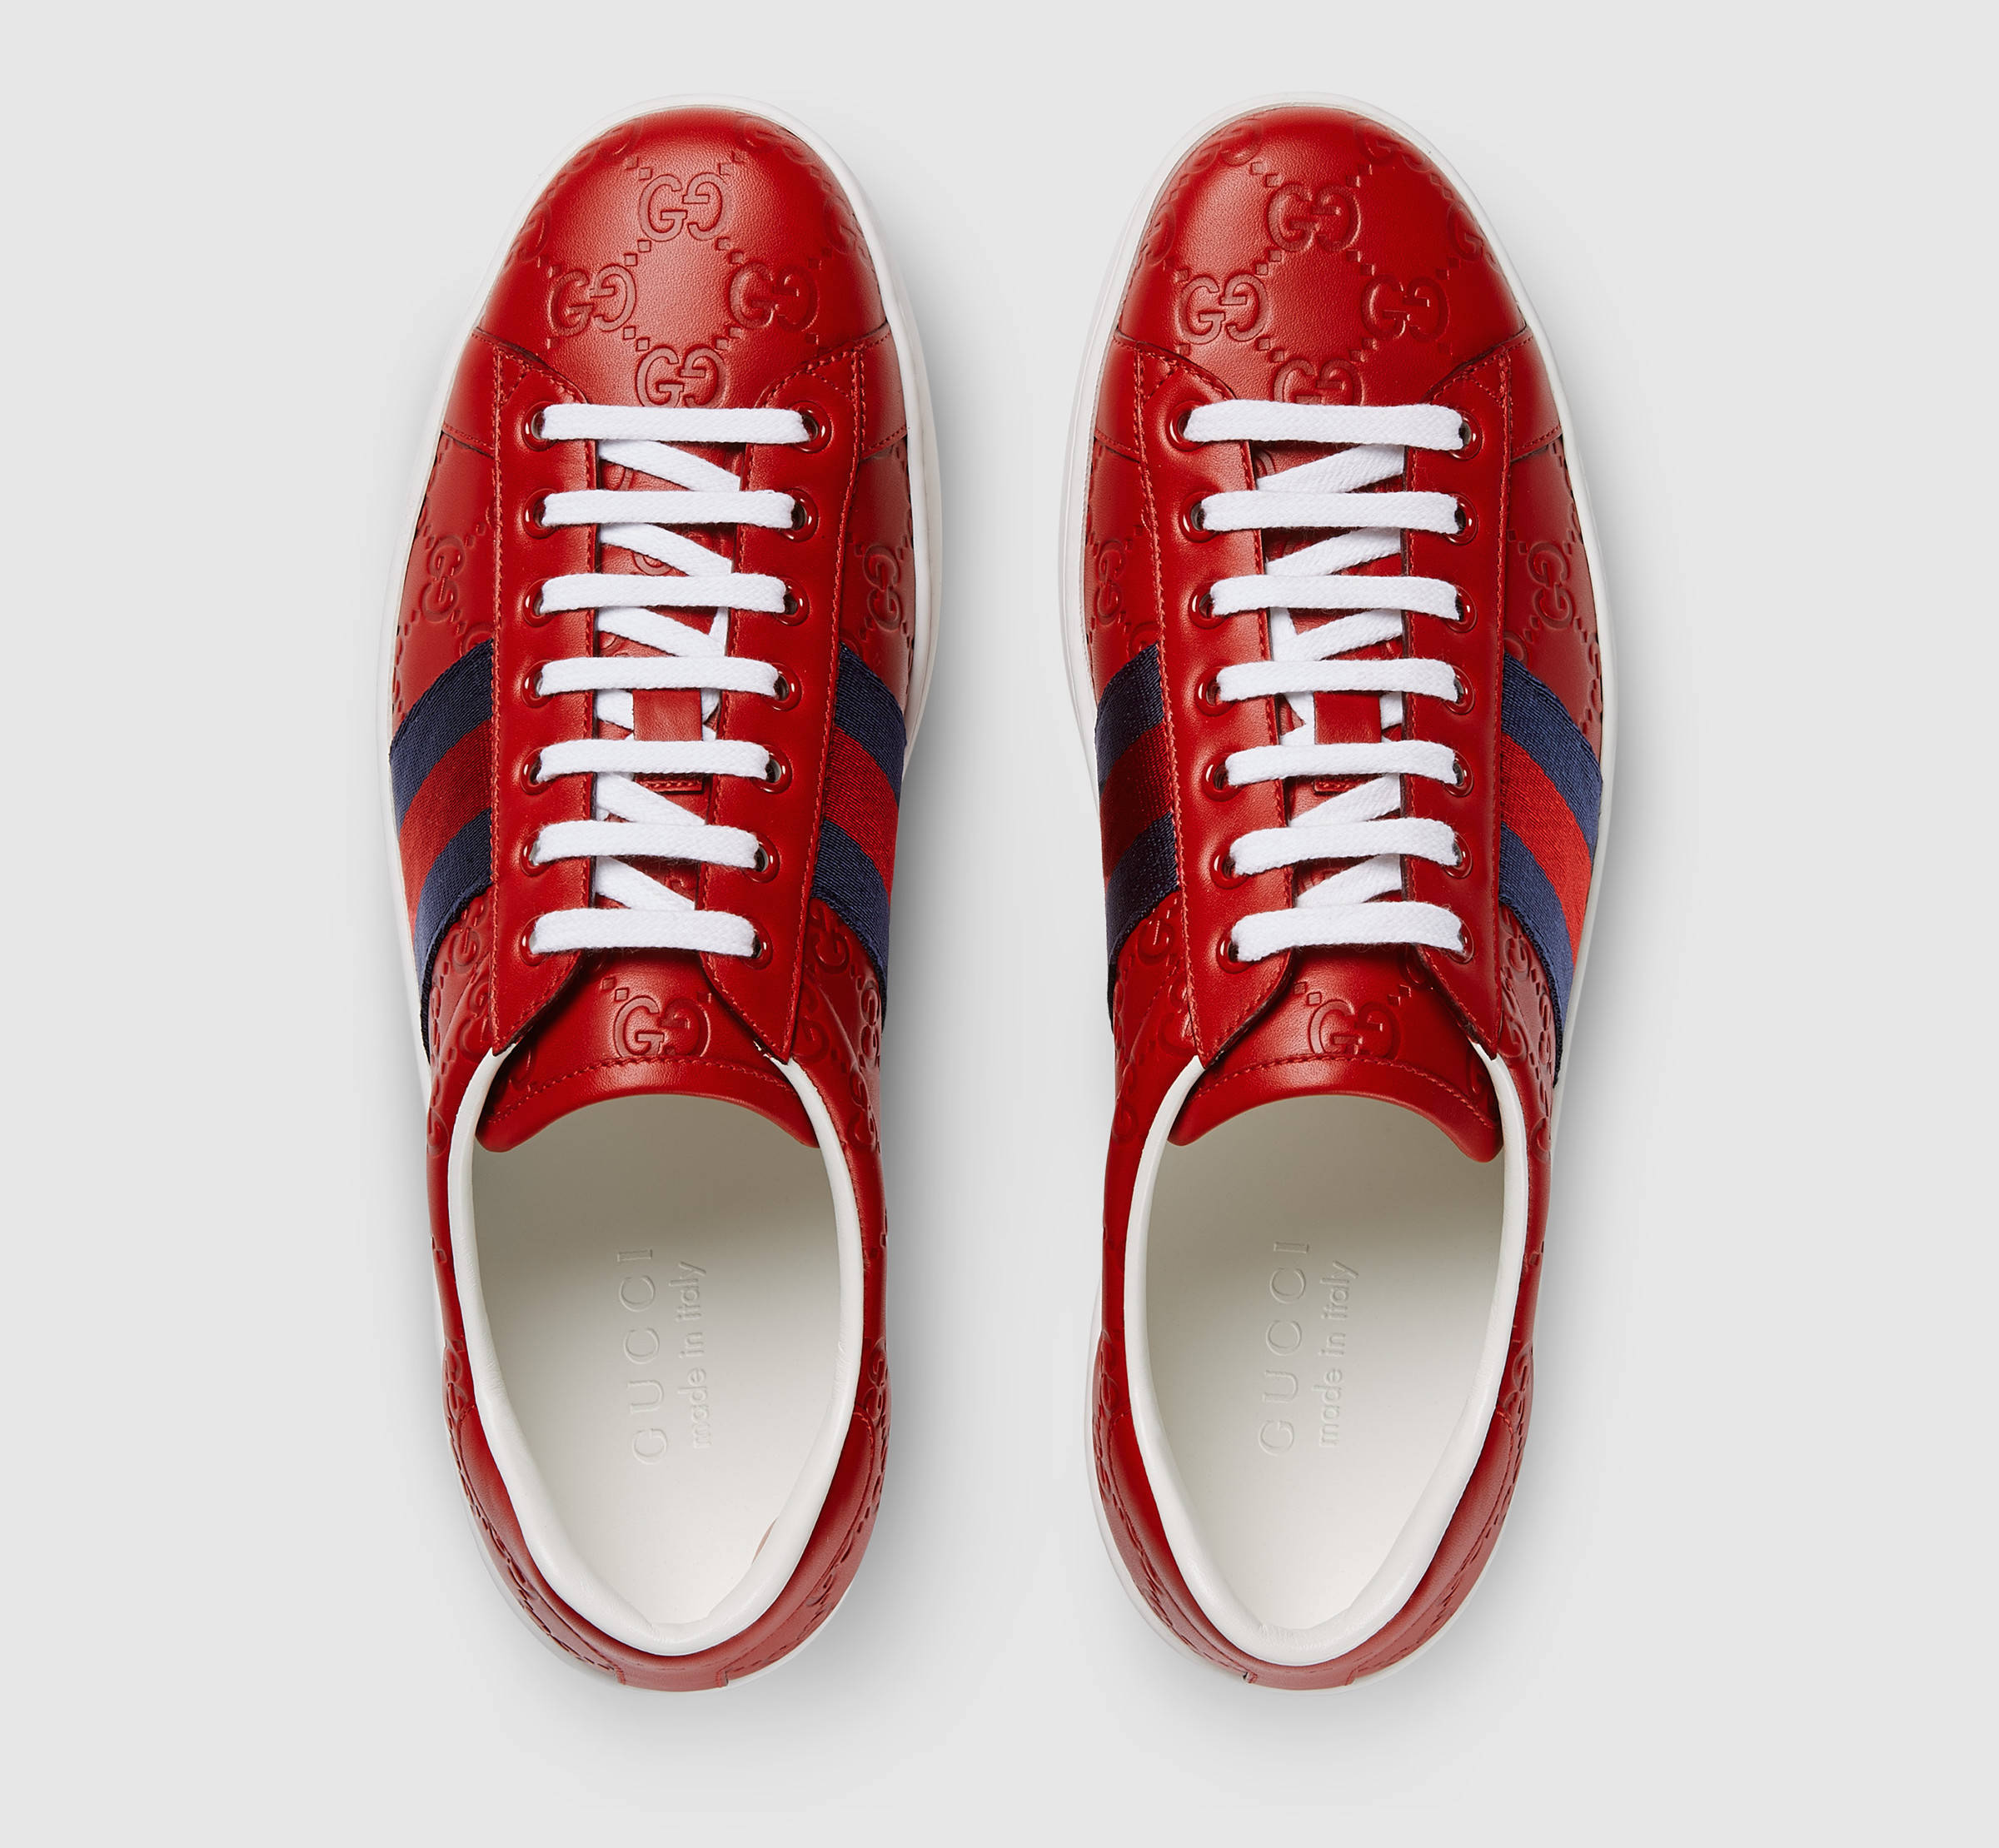 gucci-red-ace-signature-low-top-sneakers-3